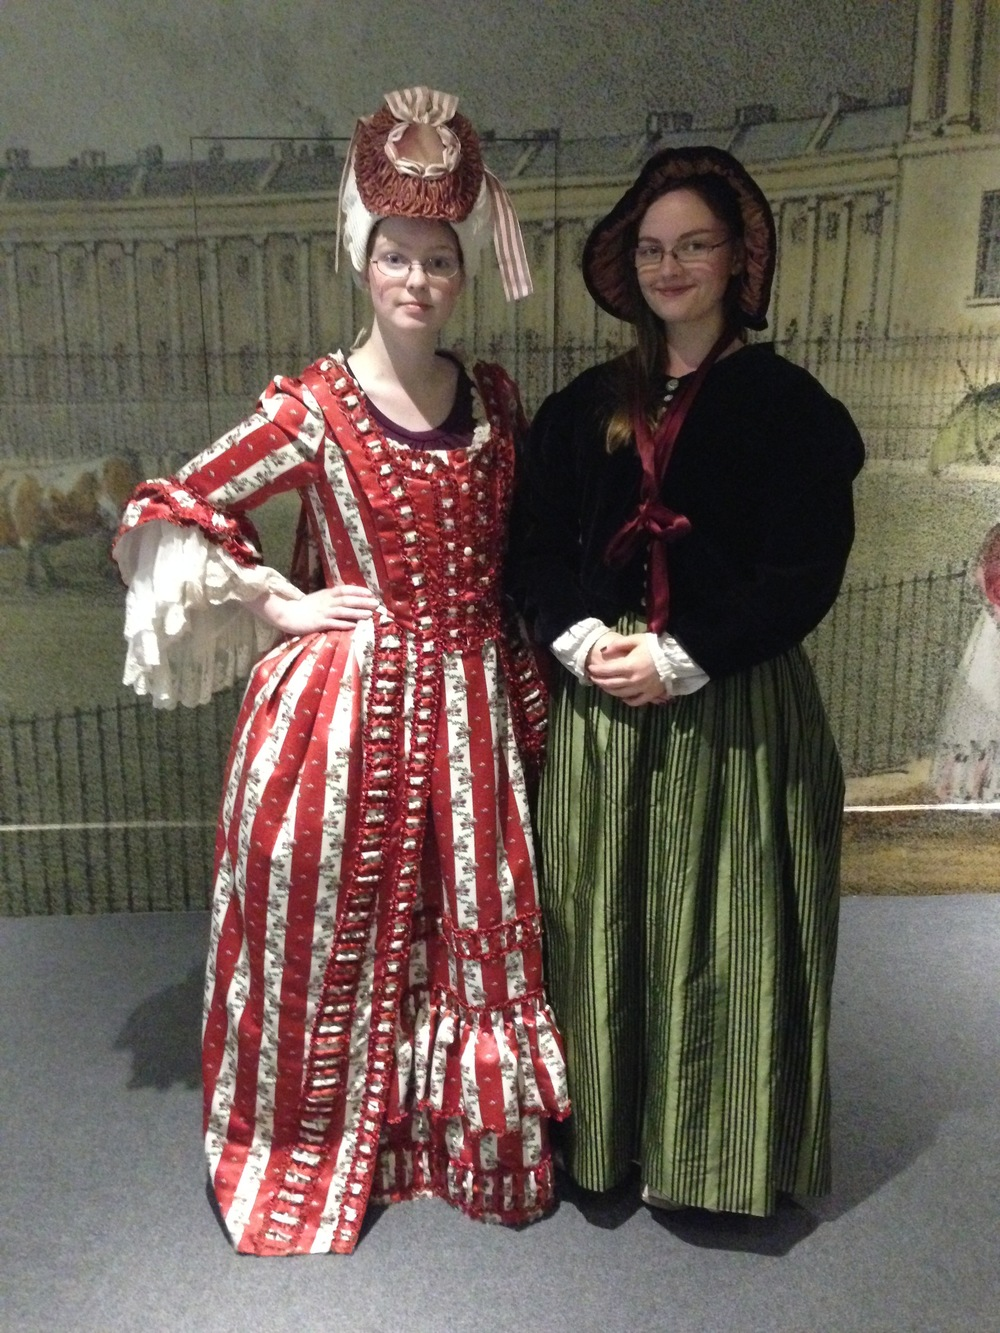 Me (left) in the 18th-century costume and wig, my sister (right) in a 19th-century dress and bonnet.